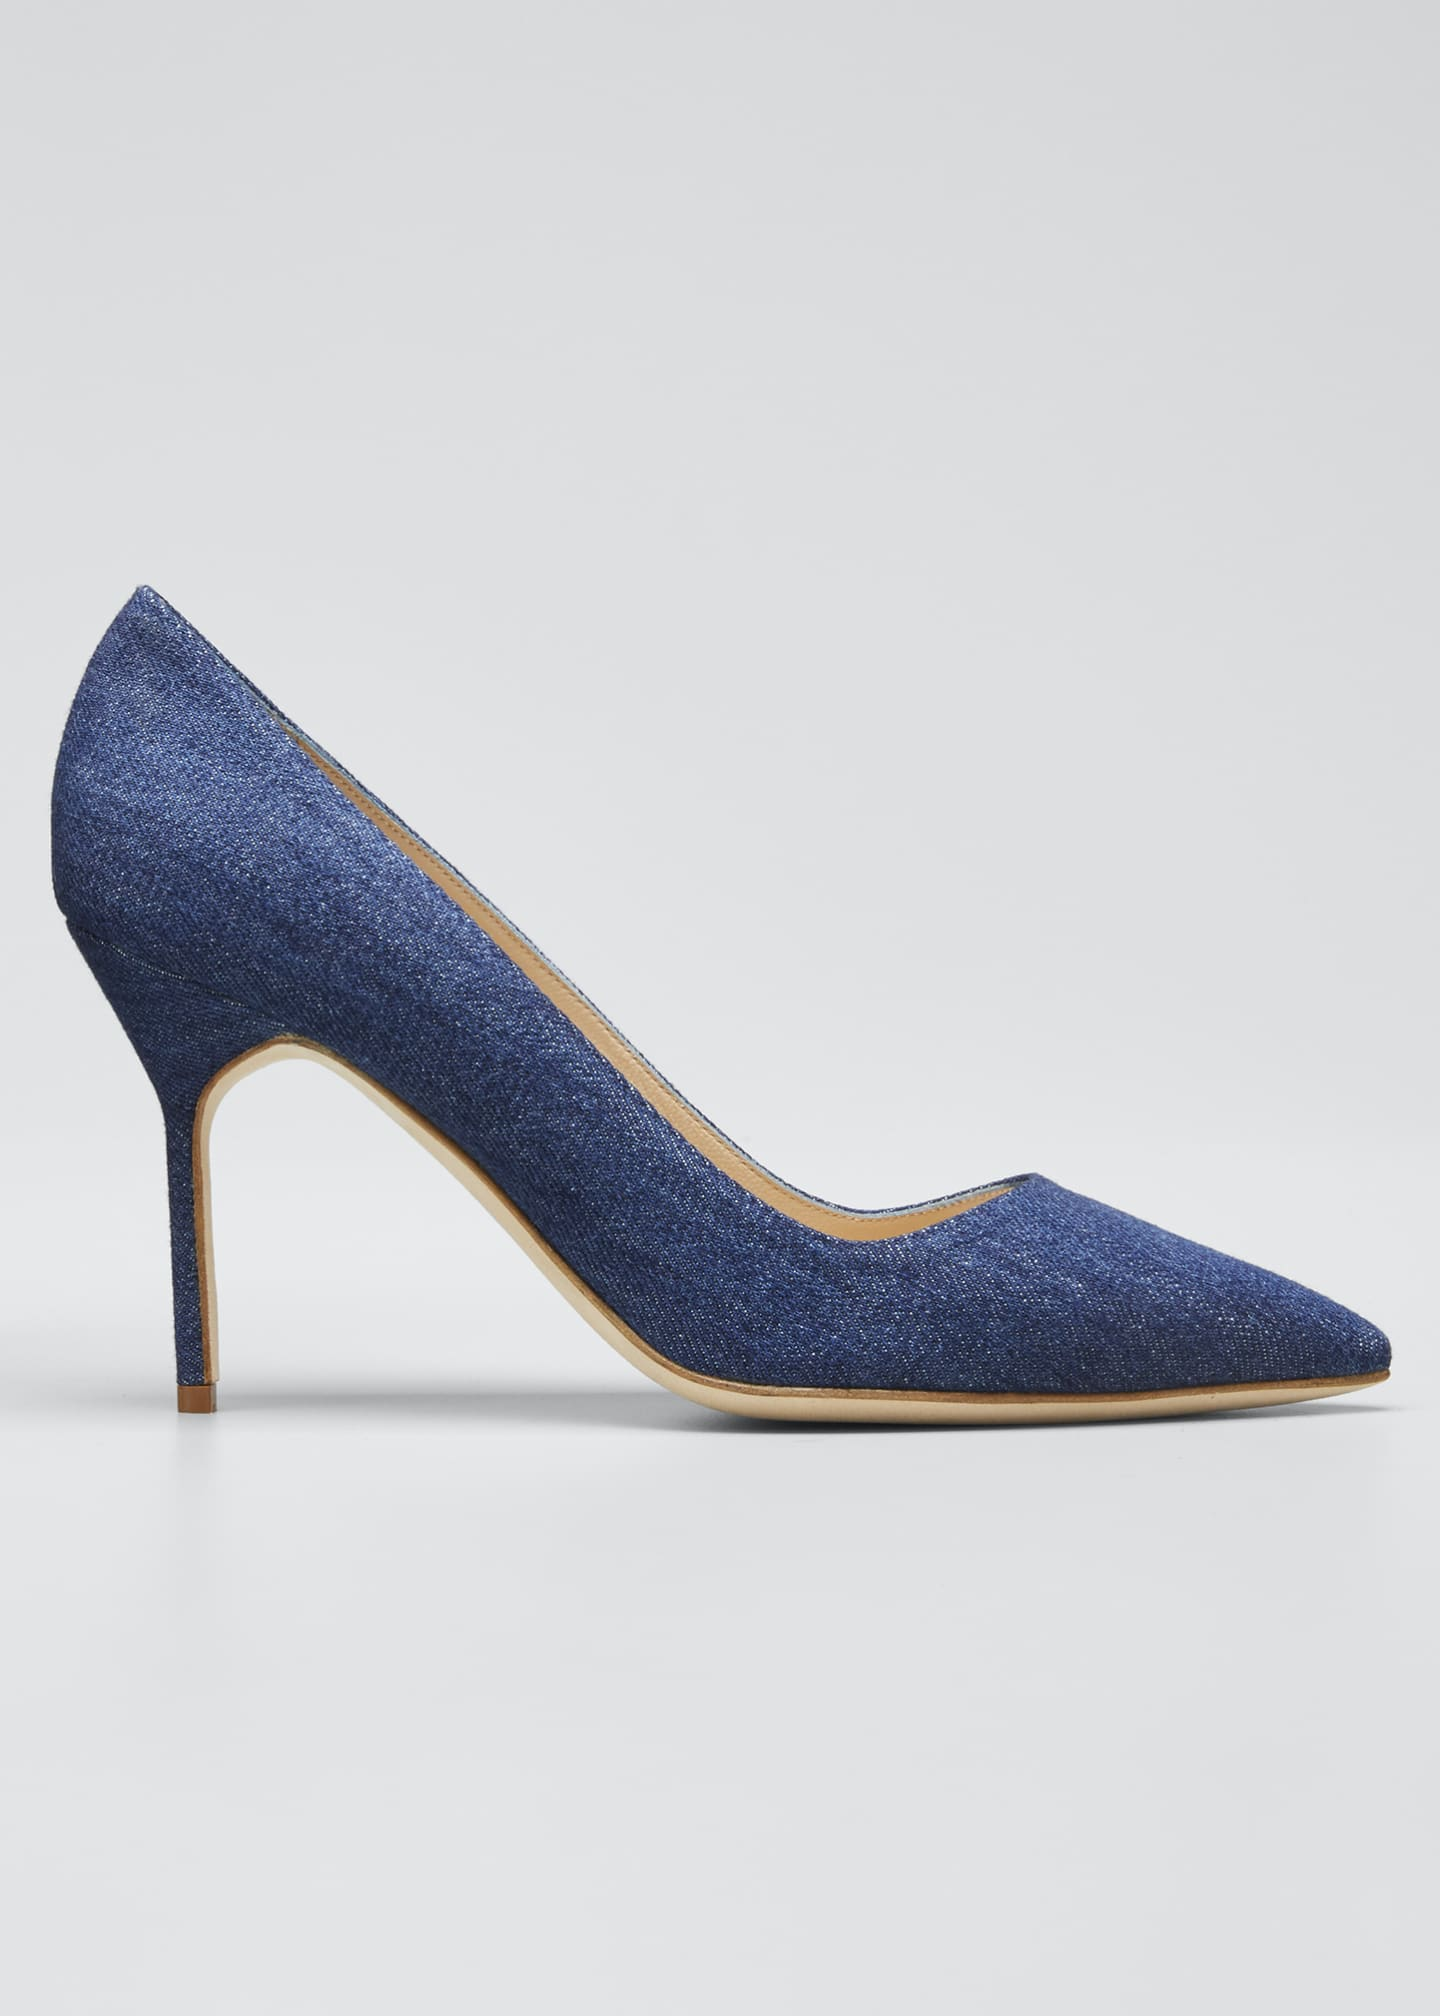 Manolo Blahnik BB 90mm Multi-Woven Leather Pumps